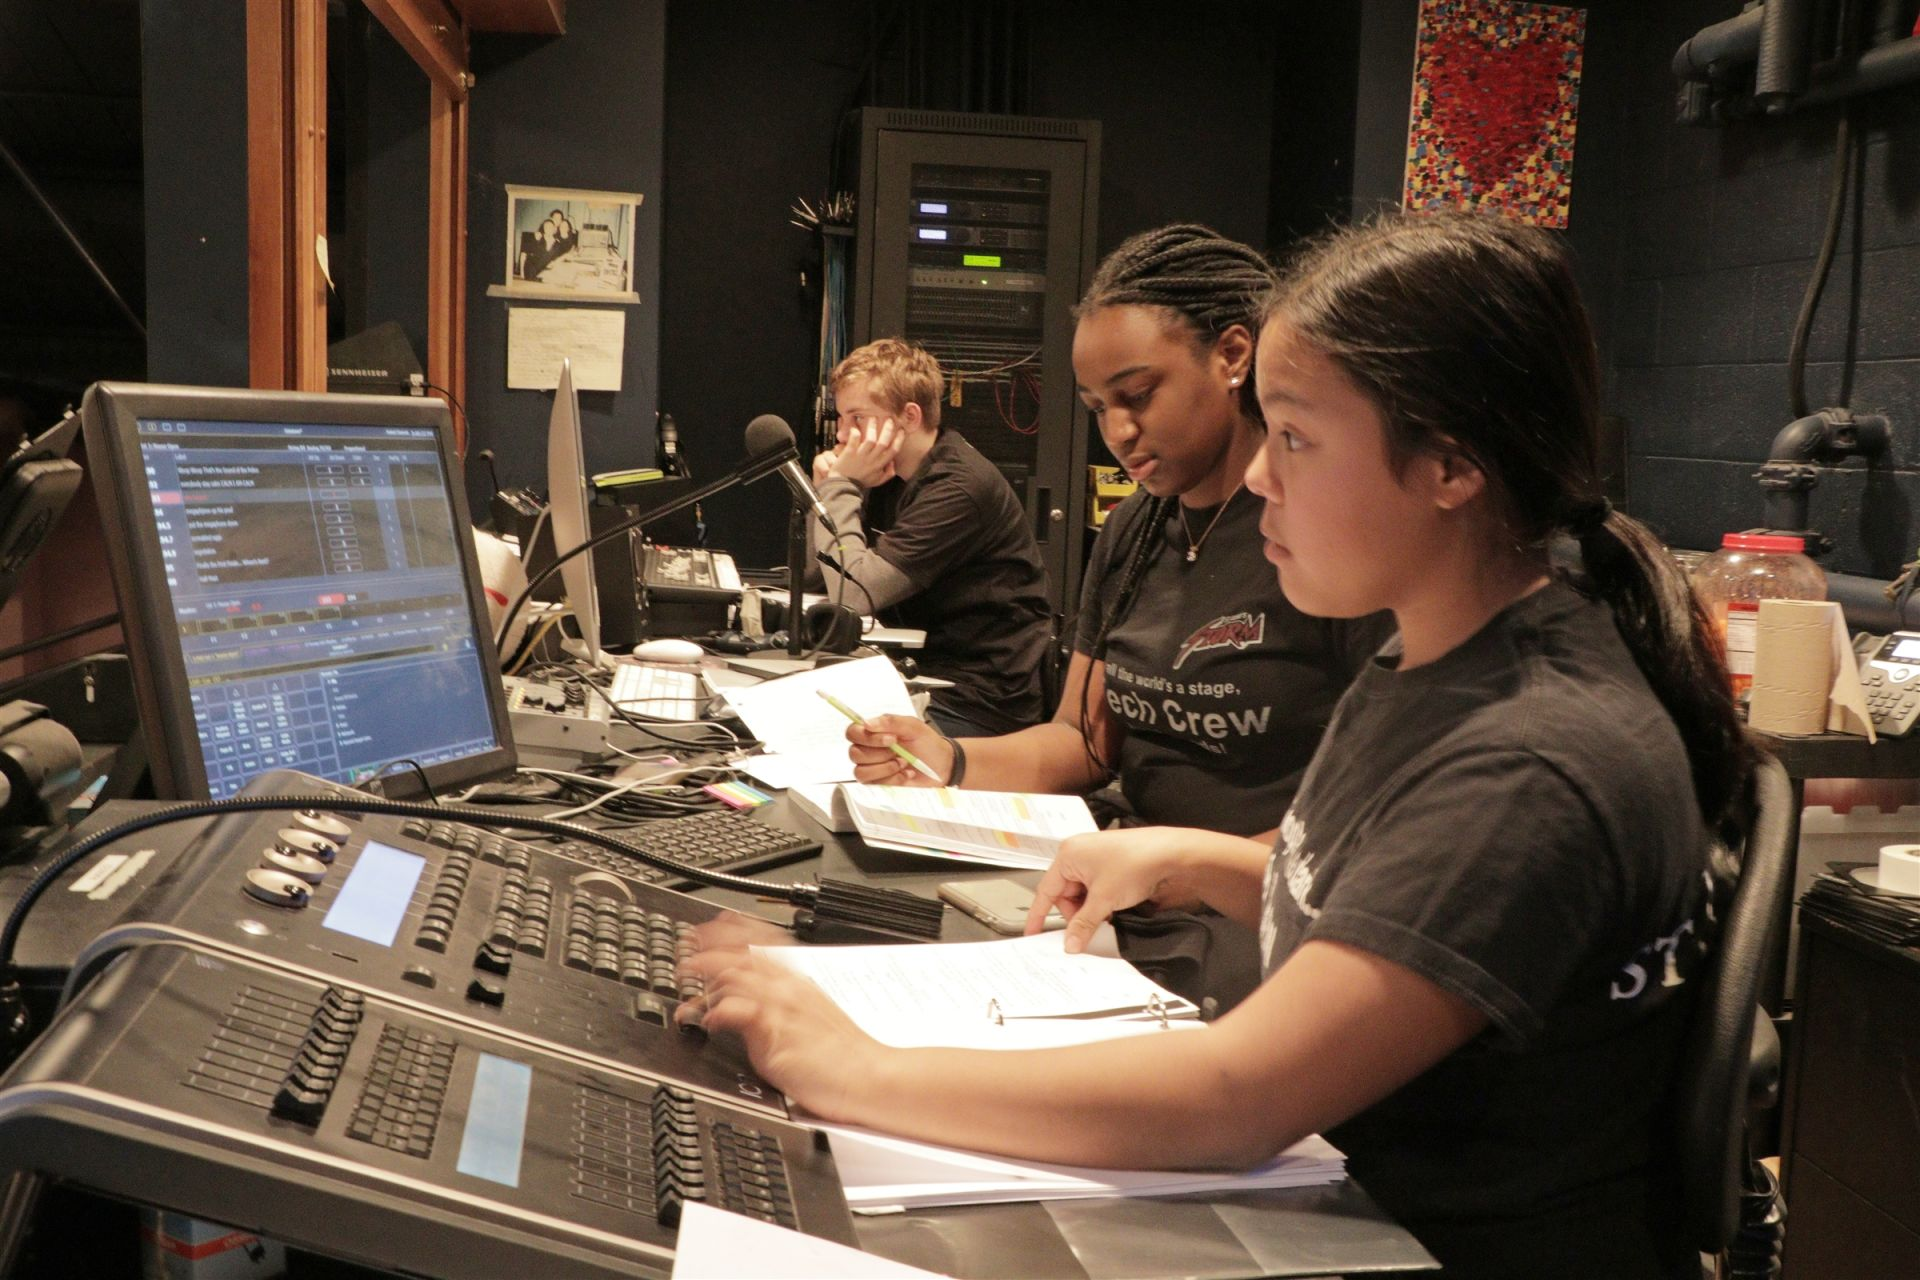 St. Luke's Tech Crew students serve in various leadership roles including running the boards in the booth during productions